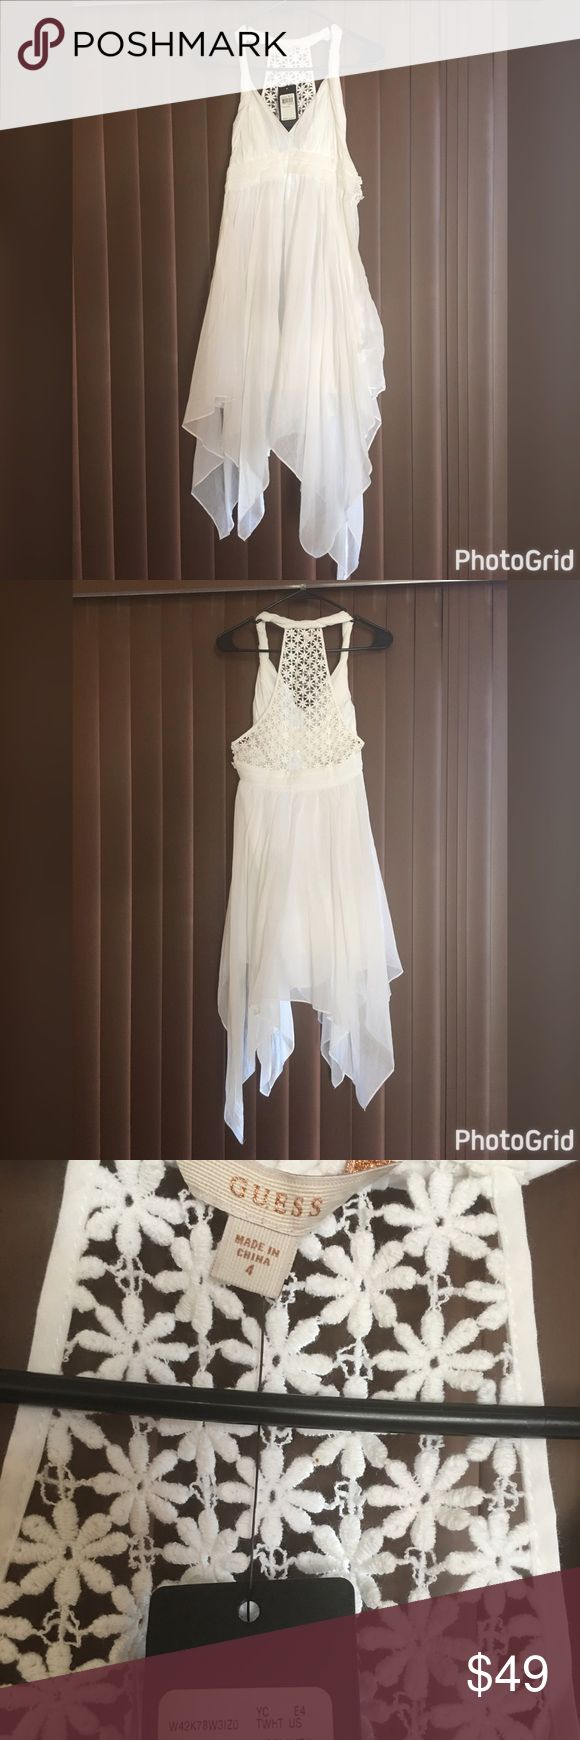 NWT GUESS dress Sz 4 White summer dress. Crotchet backing. Super cute and flowy! Would be great with wedges. Retail price is $108! Guess Dresses Asymmetrical